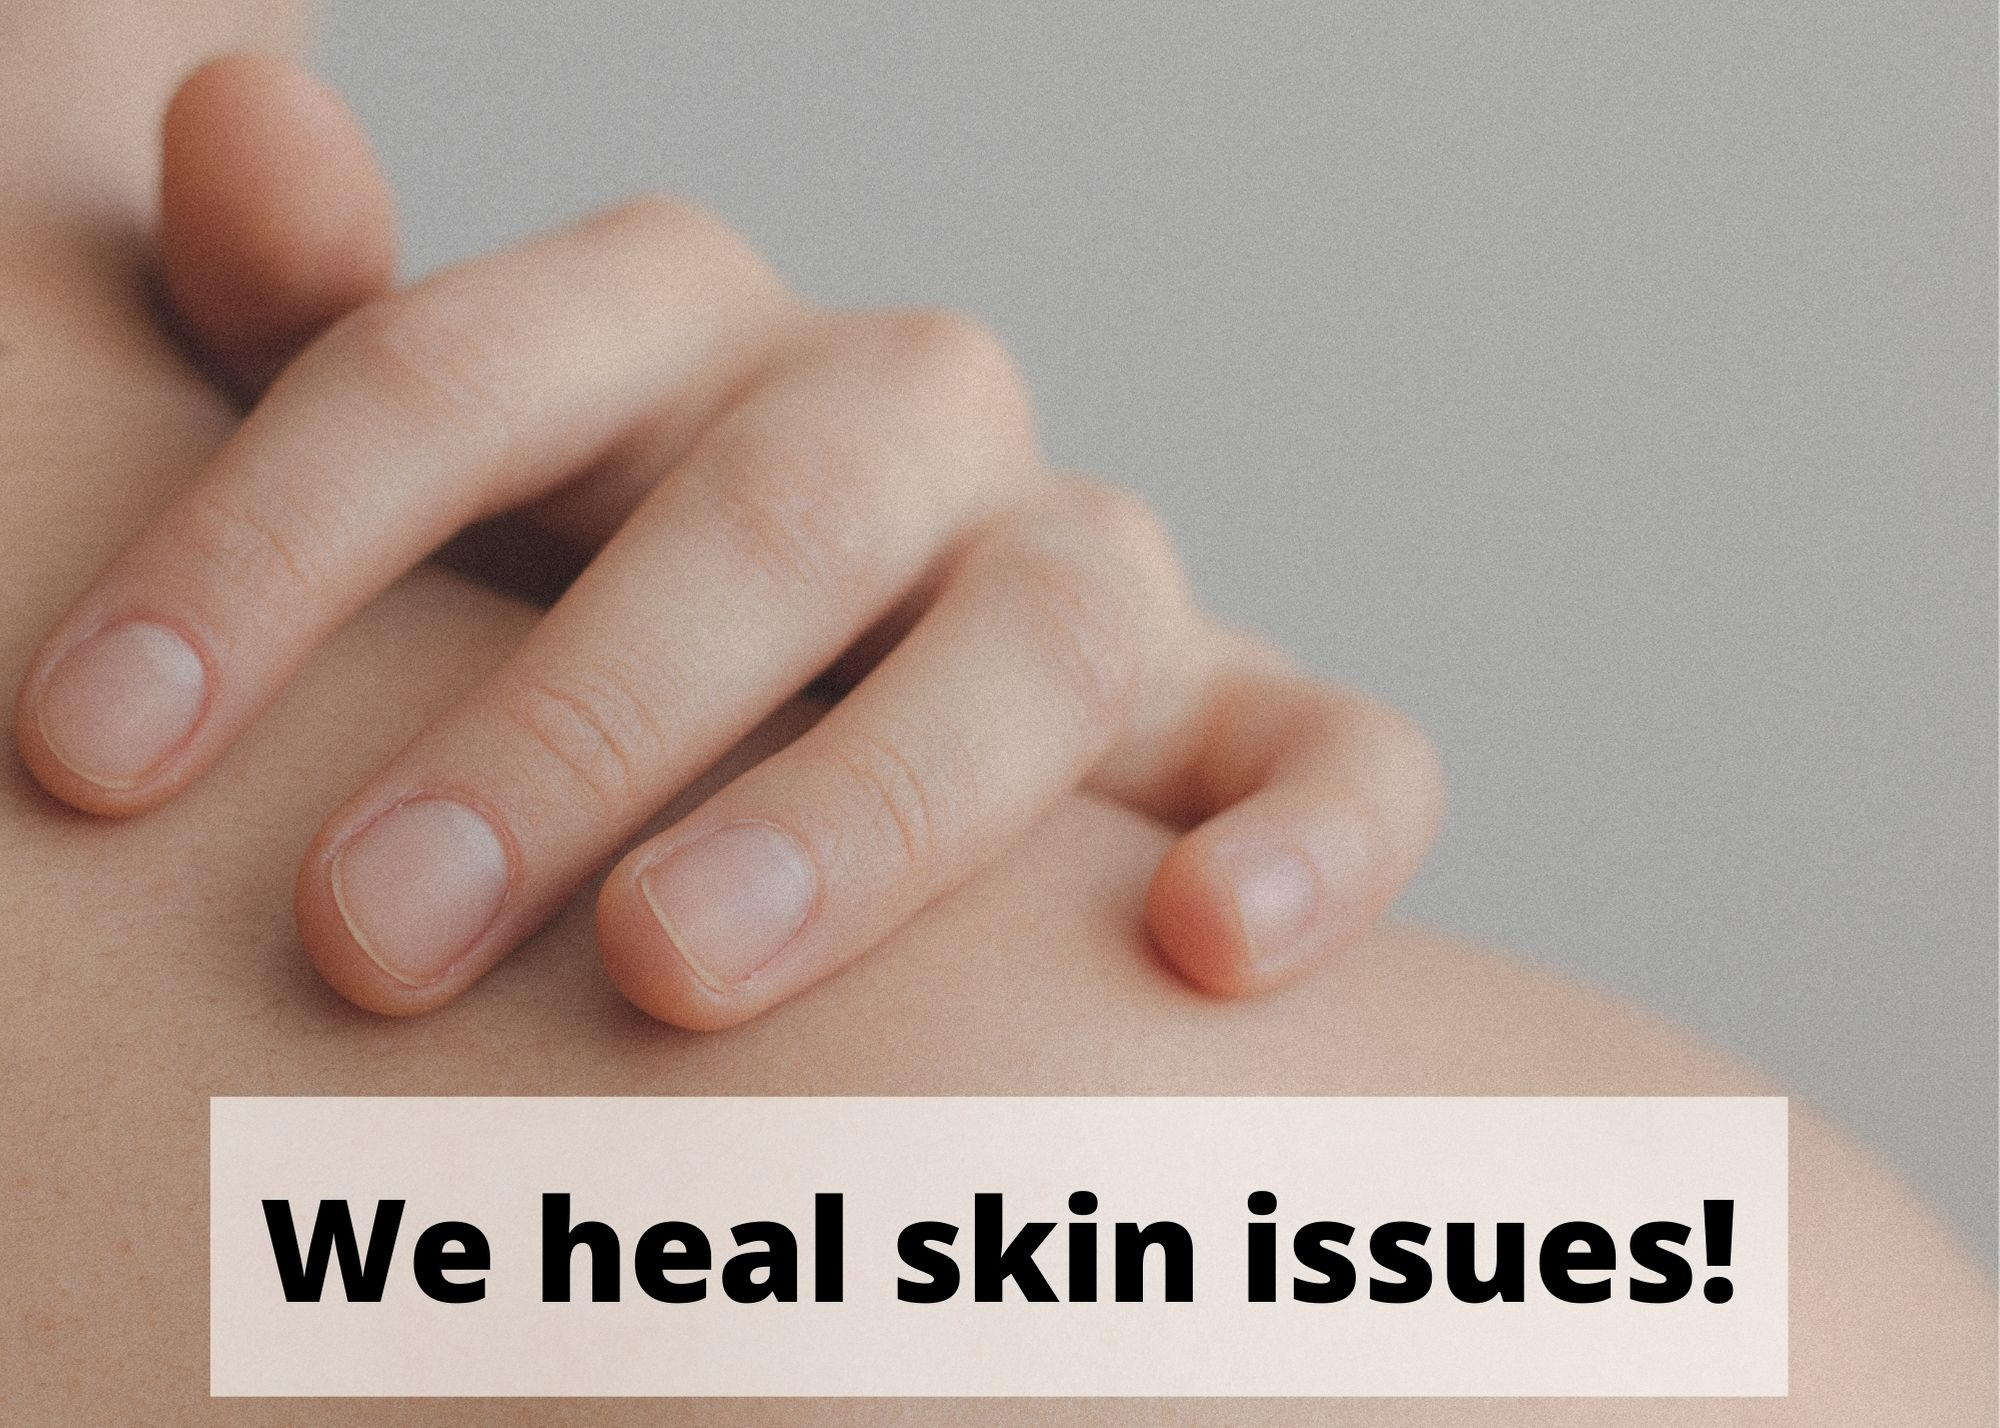 Acne, Rash & Skin Issues - Healing with Zen